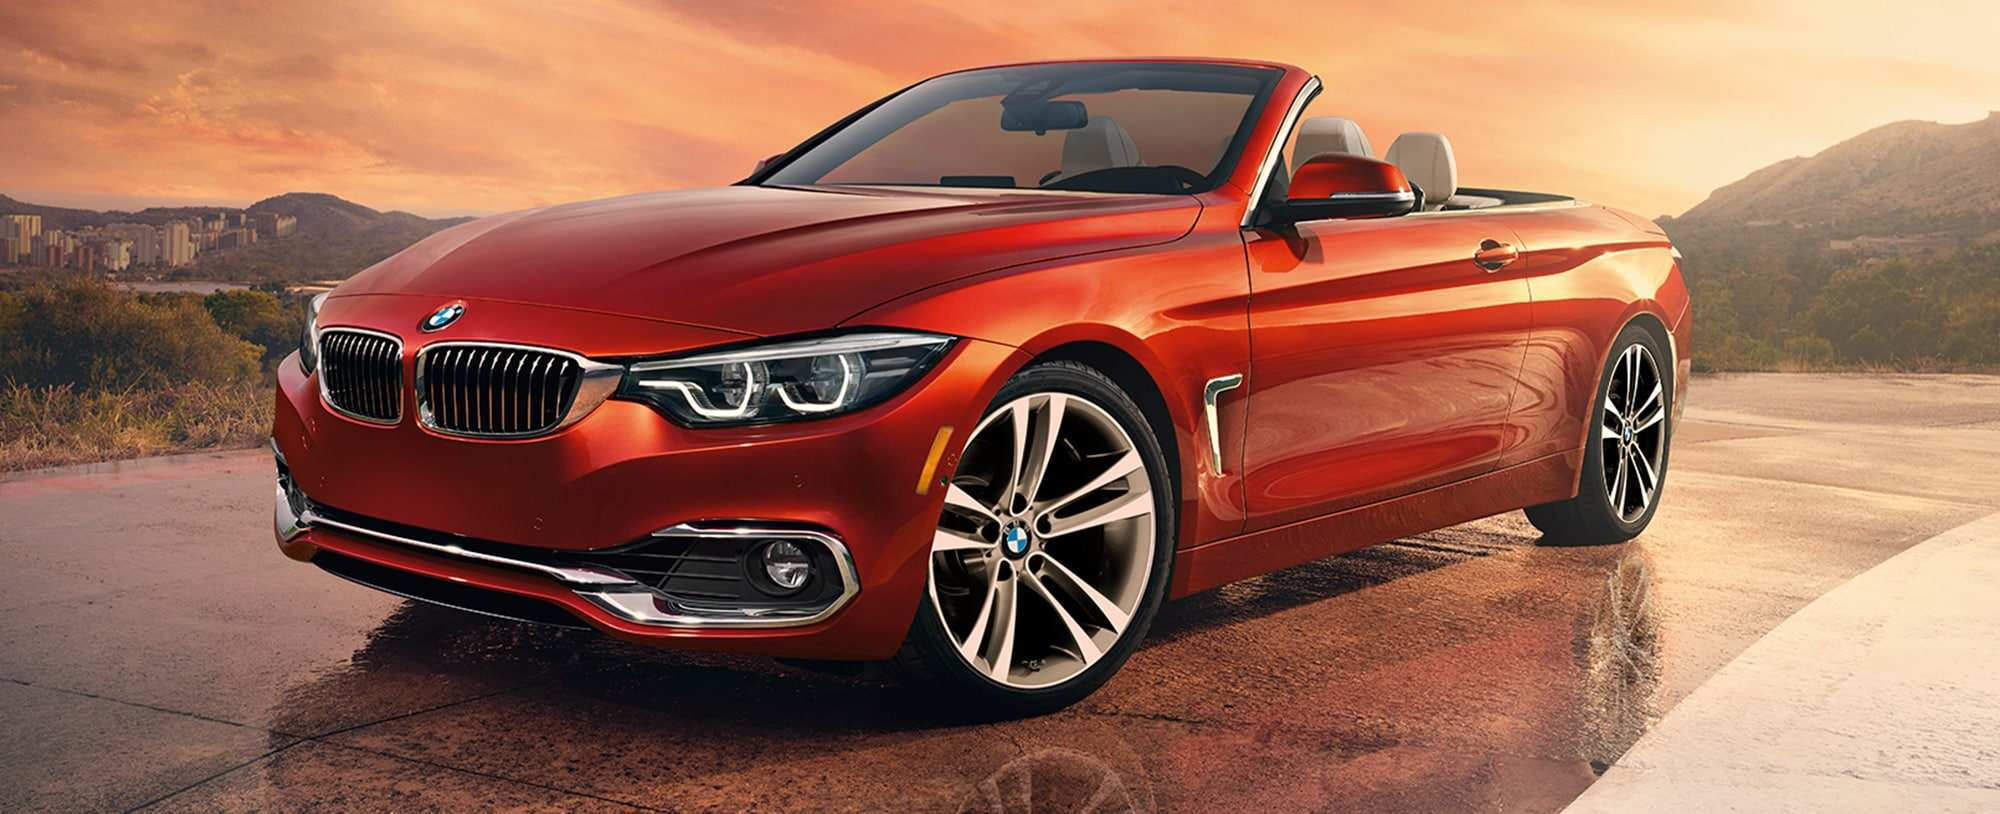 72 All New 2019 4 Series Bmw Price Design And Review